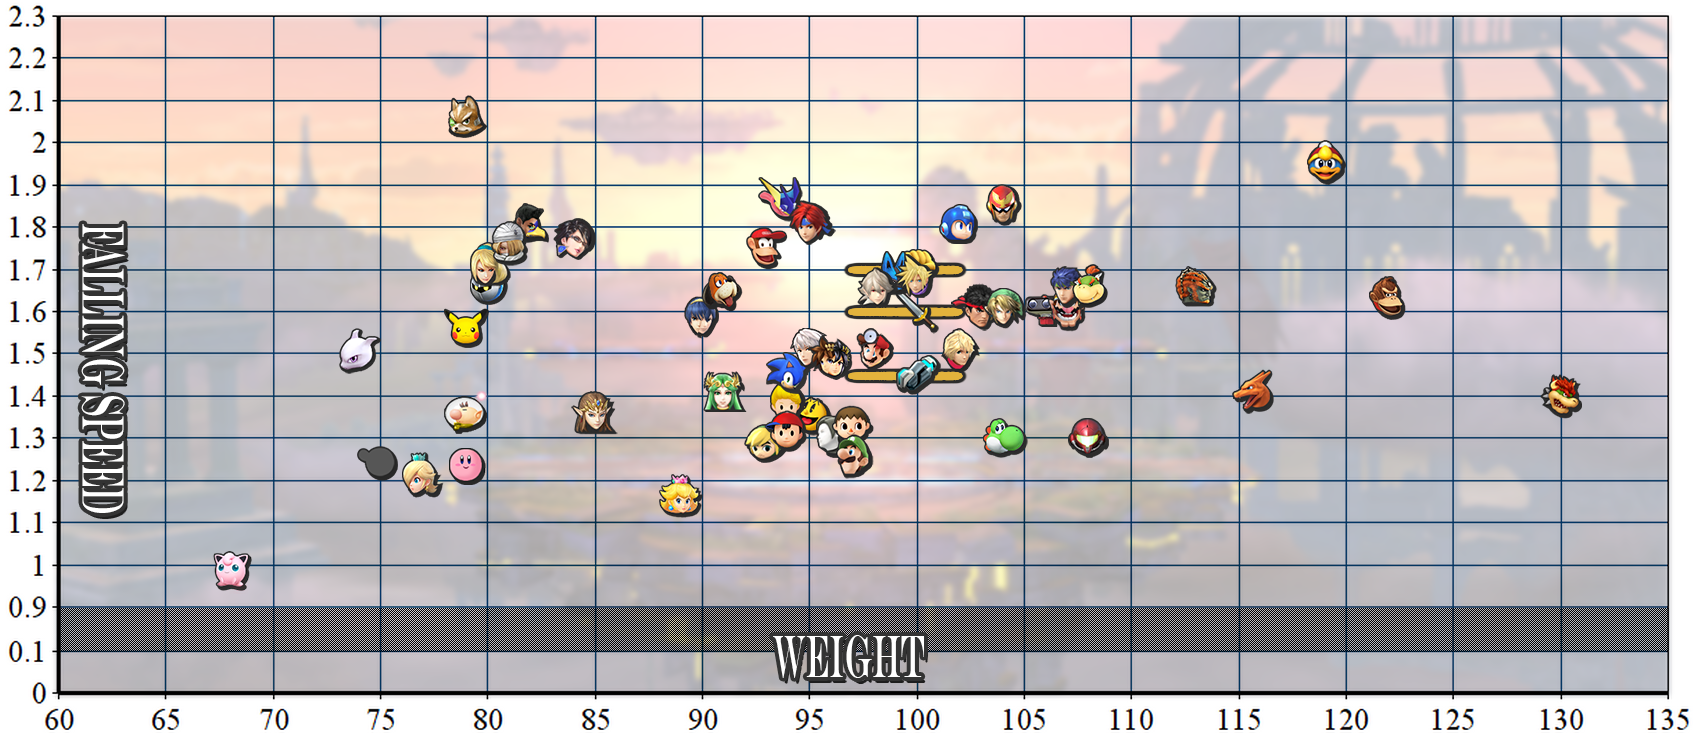 Falling speed vs weight chart super smash brothers know your meme 23 22 21 19 18 17 165 15 14 13 12 09 01 meigh 65 70 nvjuhfo Image collections